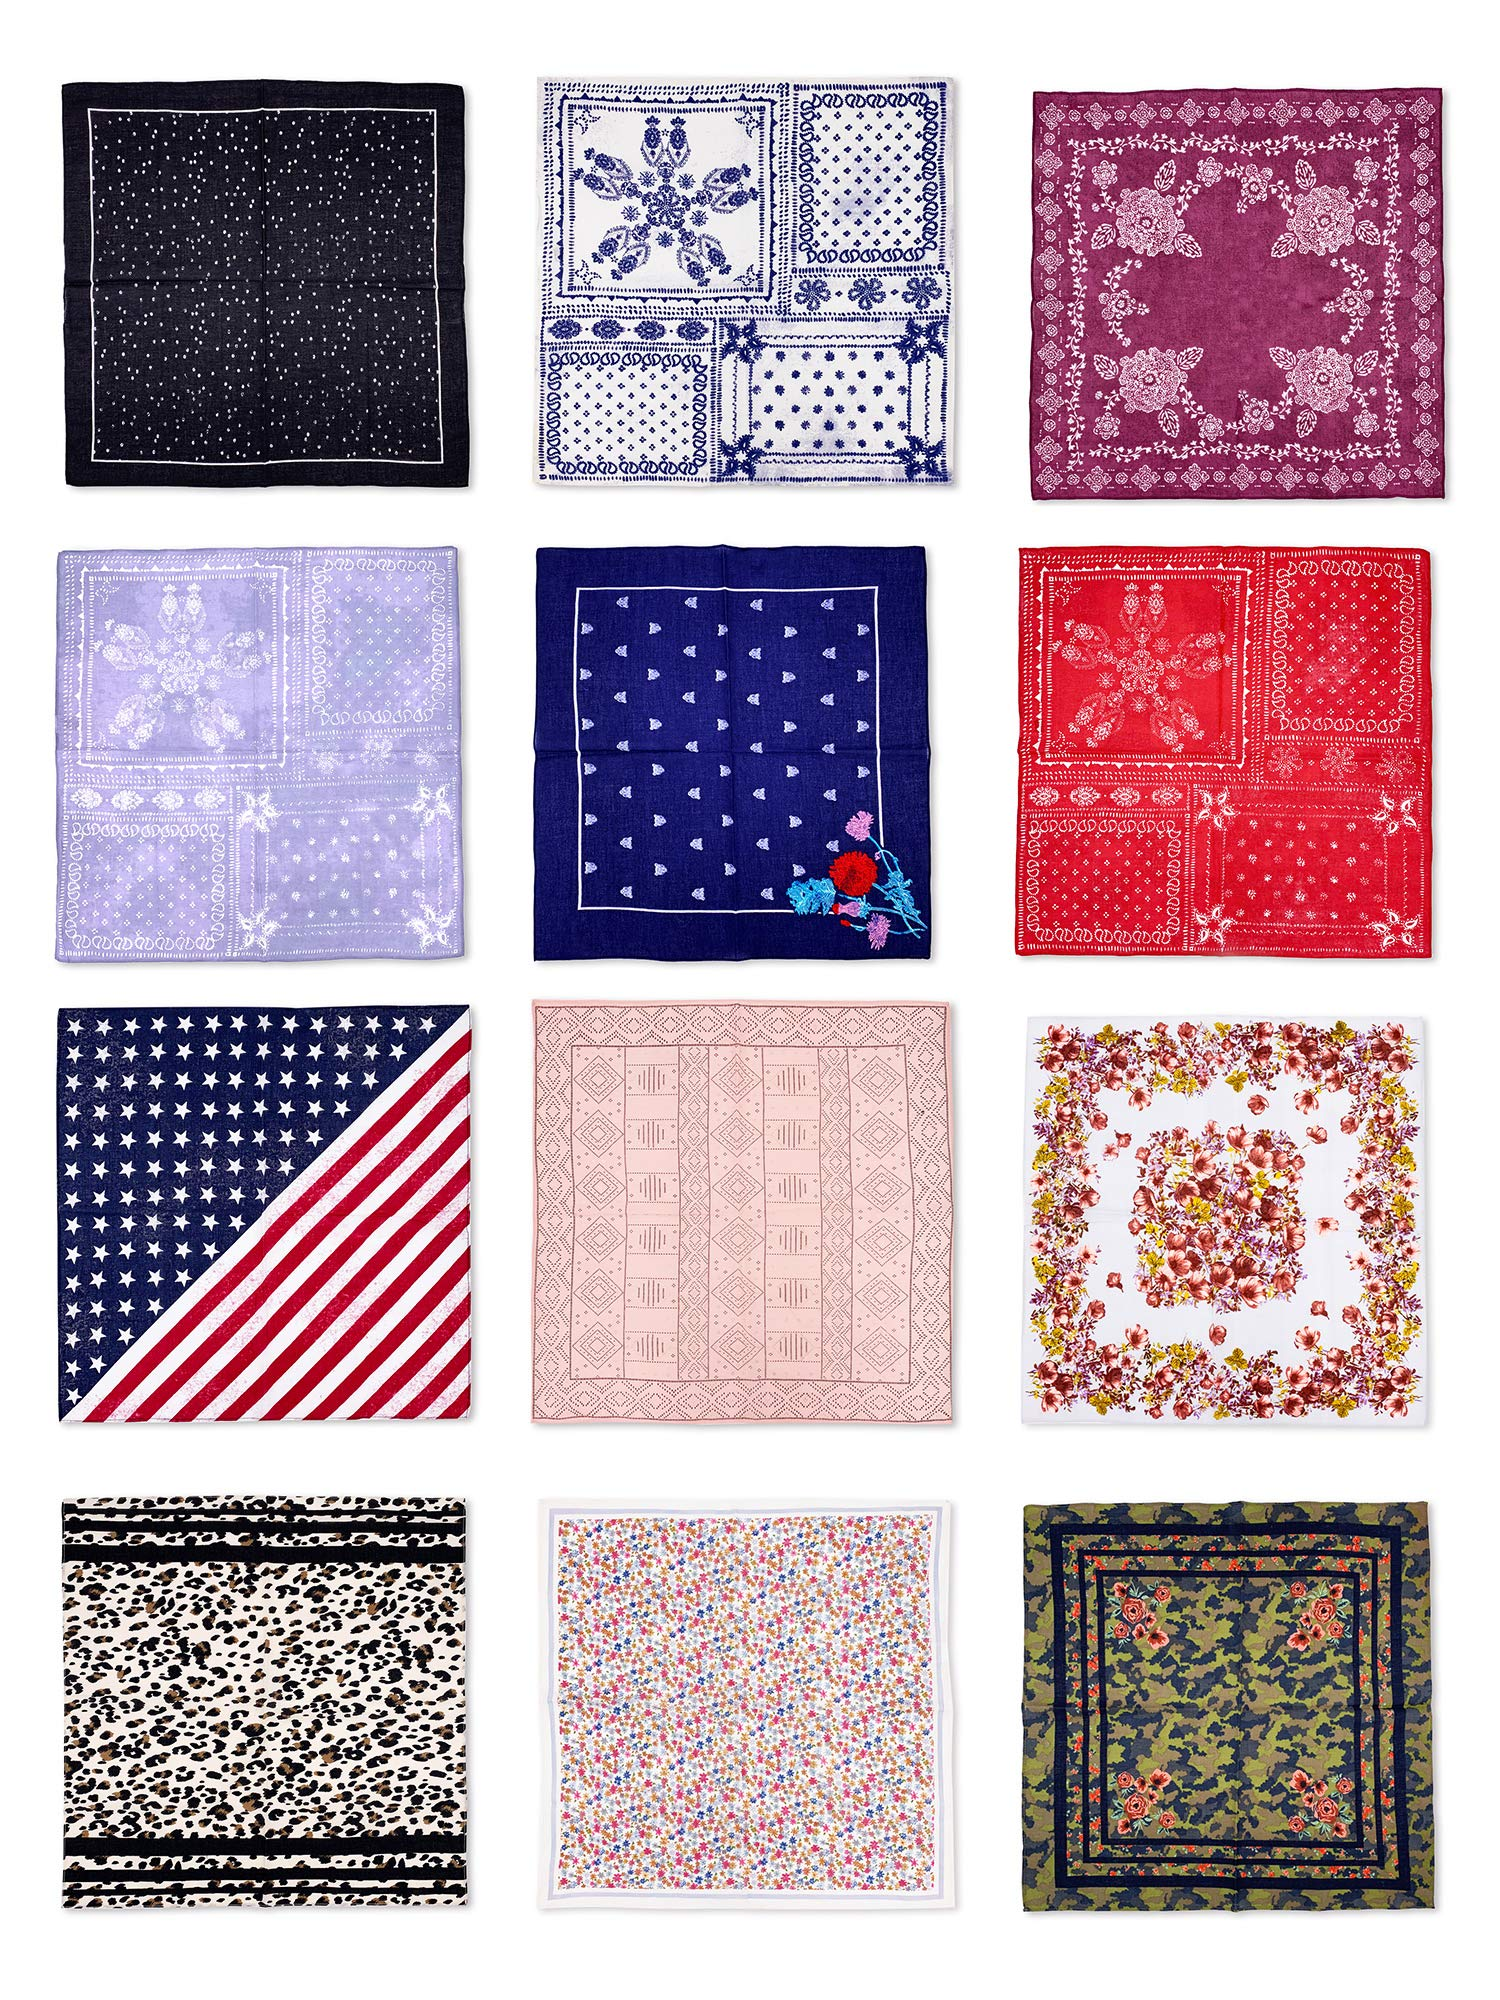 Moss Rose 4 Multi Face Mask Bandanas Set For Dust, Outdoors, Festivals, Sports